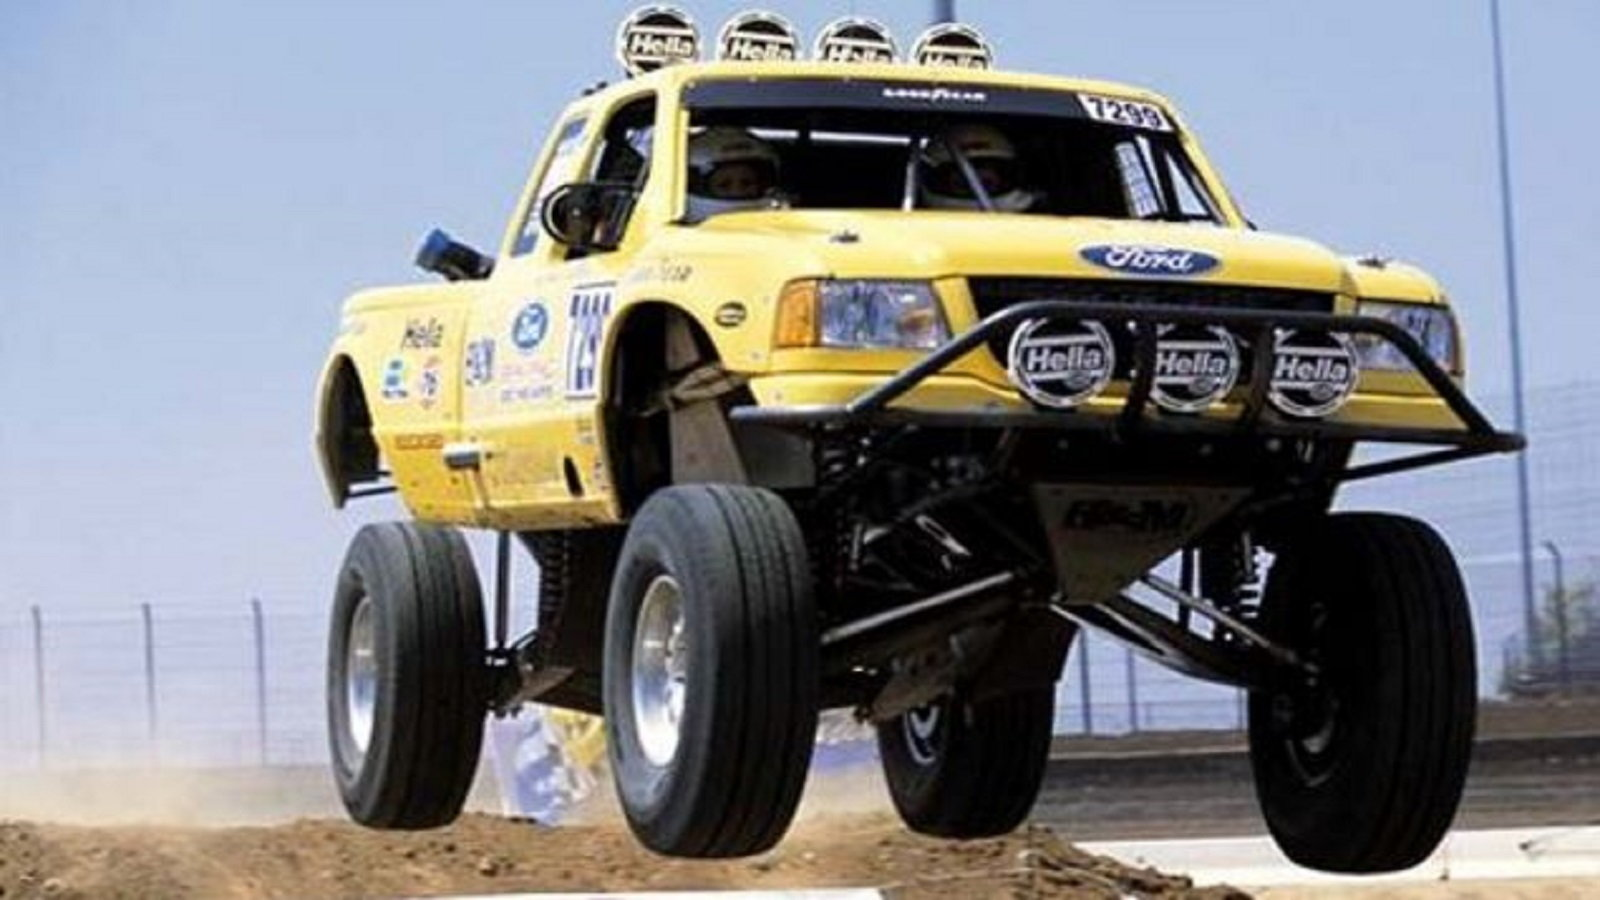 Holmes Racing 2001 Ford Ranger